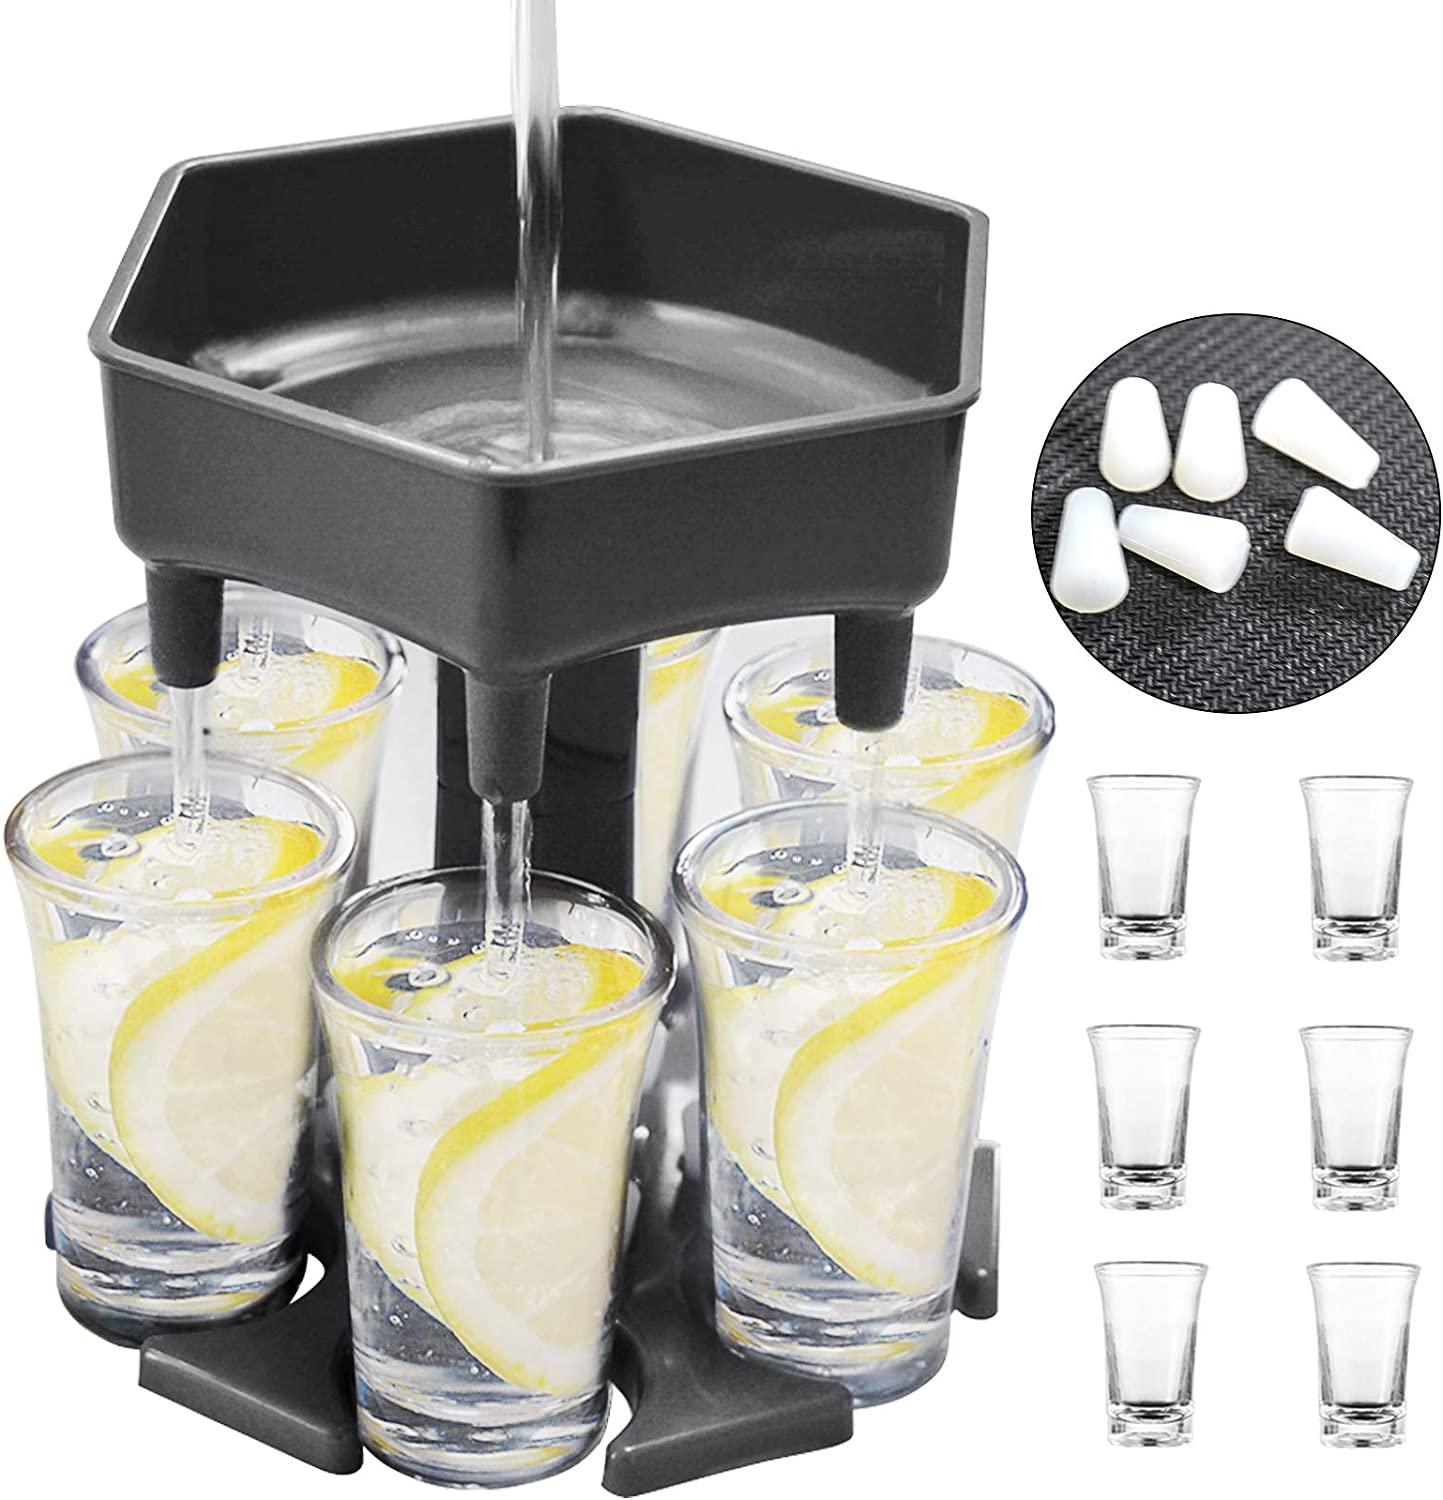 6 Shot Glass Dispenser, Drink Dispenser and Holder with Stoppers, Beverage Dispenser with Glasses for Filling Liquids Cocktail Carrier Liquor Gifts Bar Shot Buddy Dispenser for Parties